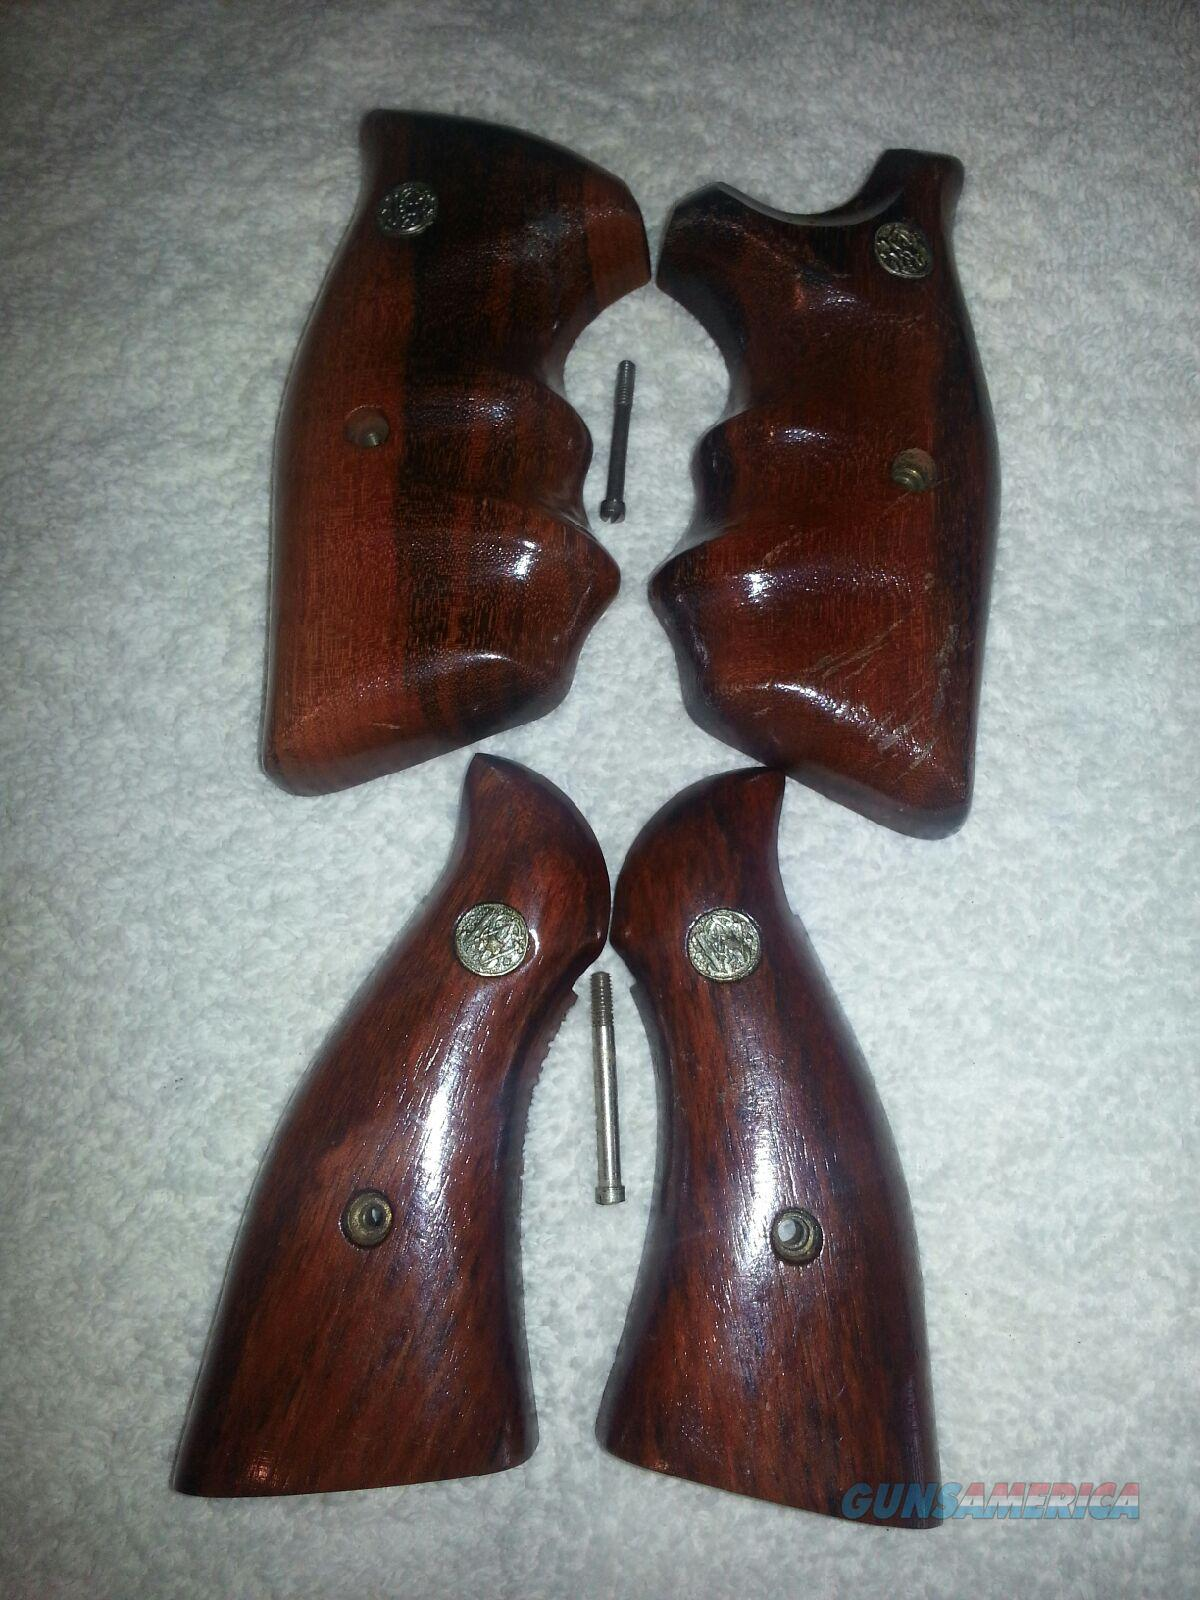 S&W K OR L FRAME SQ BUTT 2 PAIR OF GRIPS COMBAT AND SMOOTH WOOD COMBAT STYLE  Non-Guns > Gunstocks, Grips & Wood